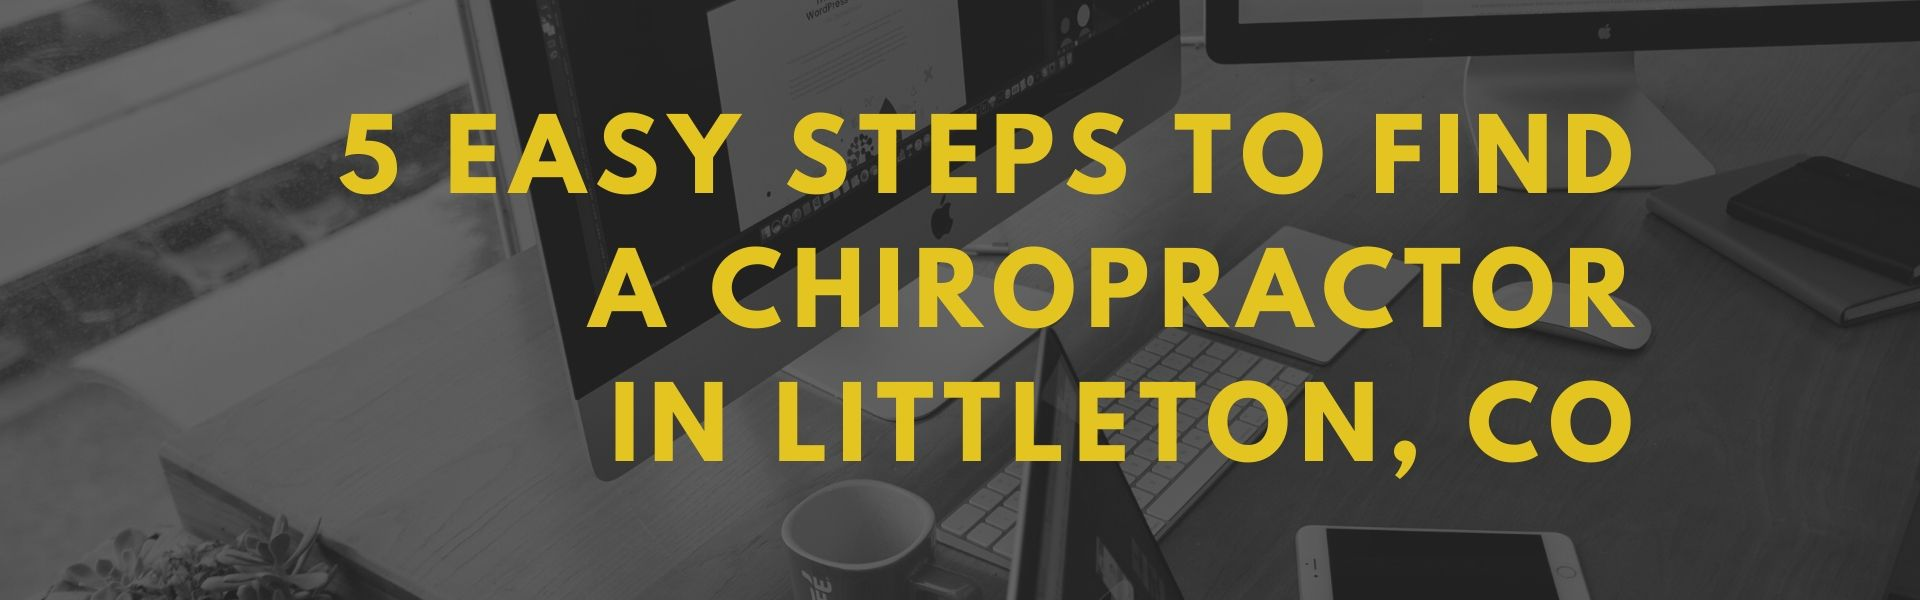 5 Easy Steps To Find A Chiropractor In Littleton, CO